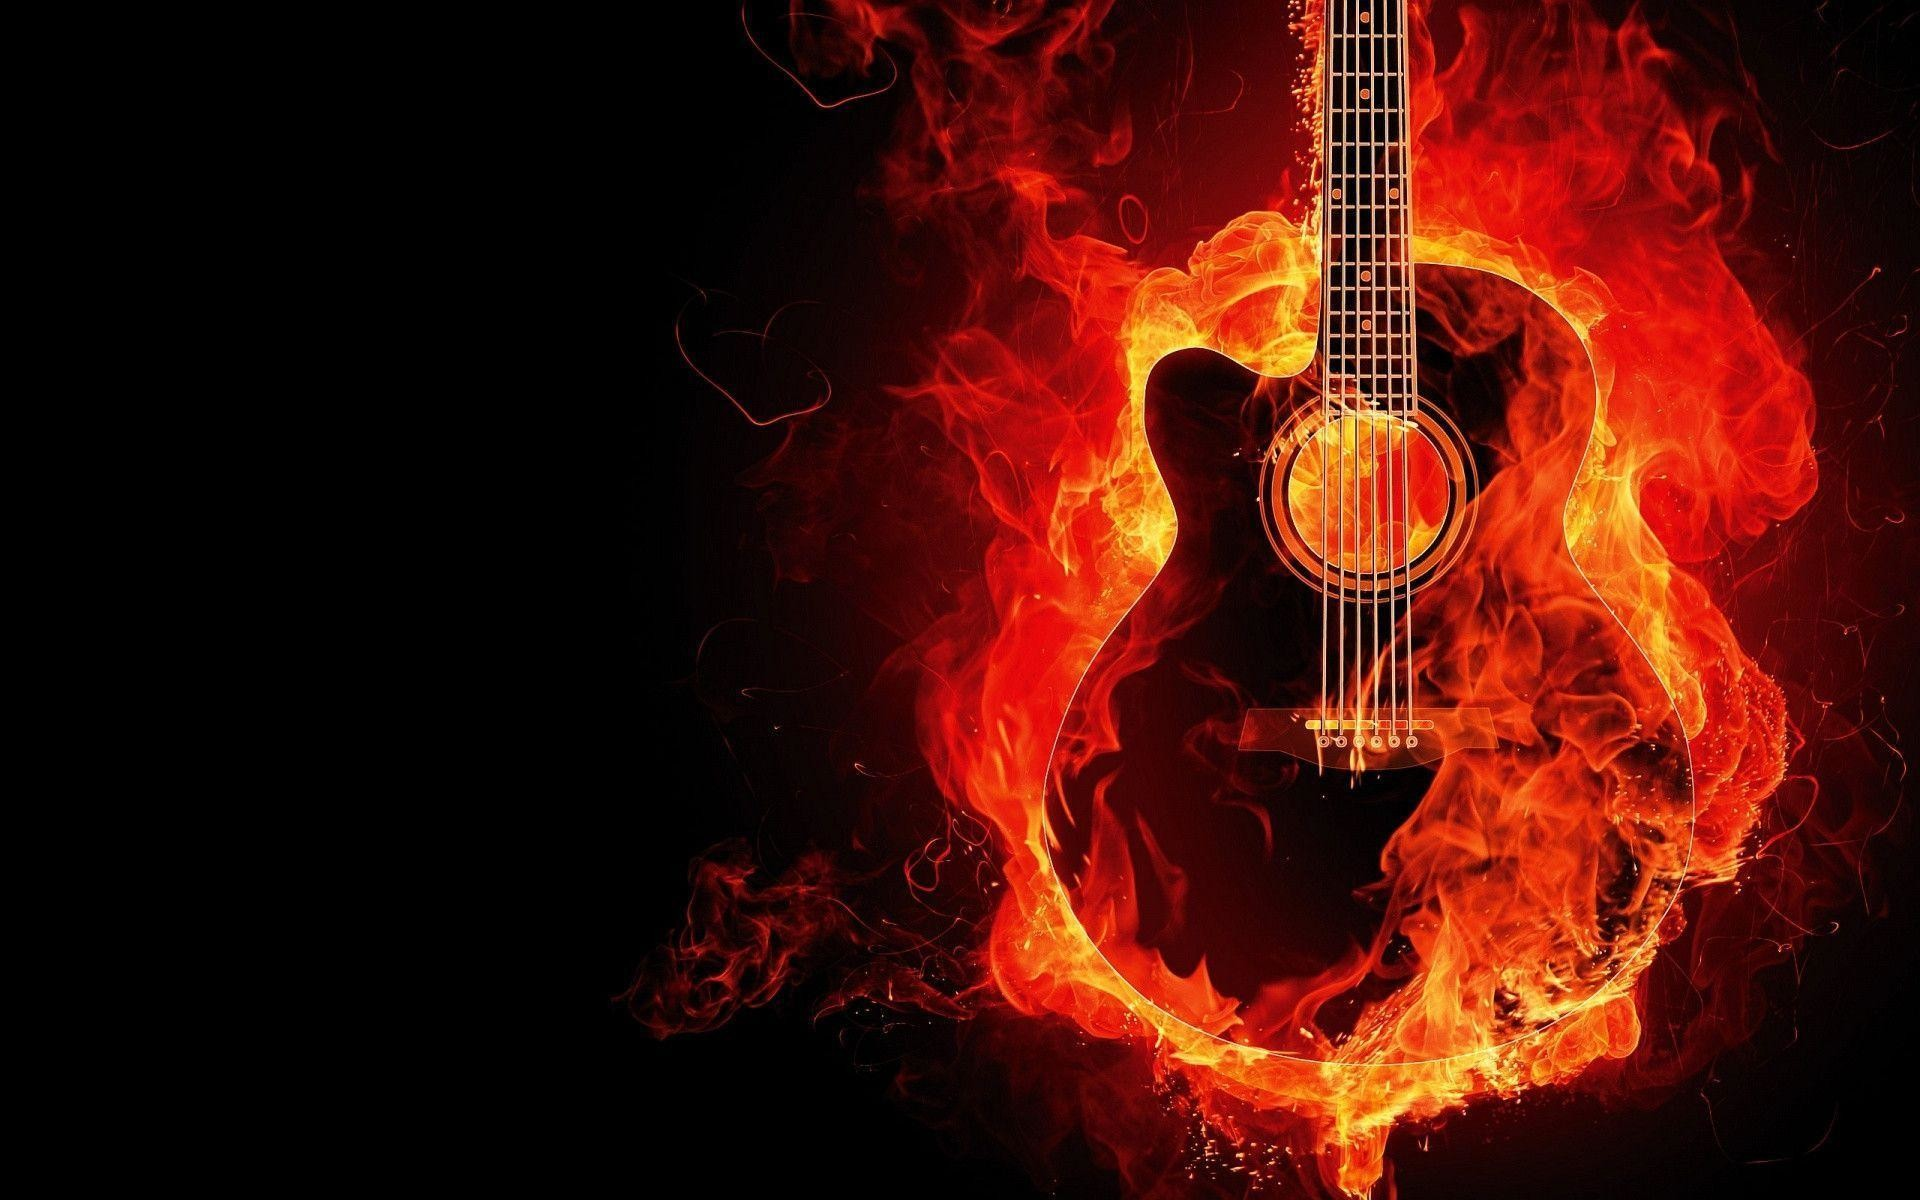 1920x1200 Guitar Desktop Wallpaper | 3D Guitar images | Cool Wallpapers